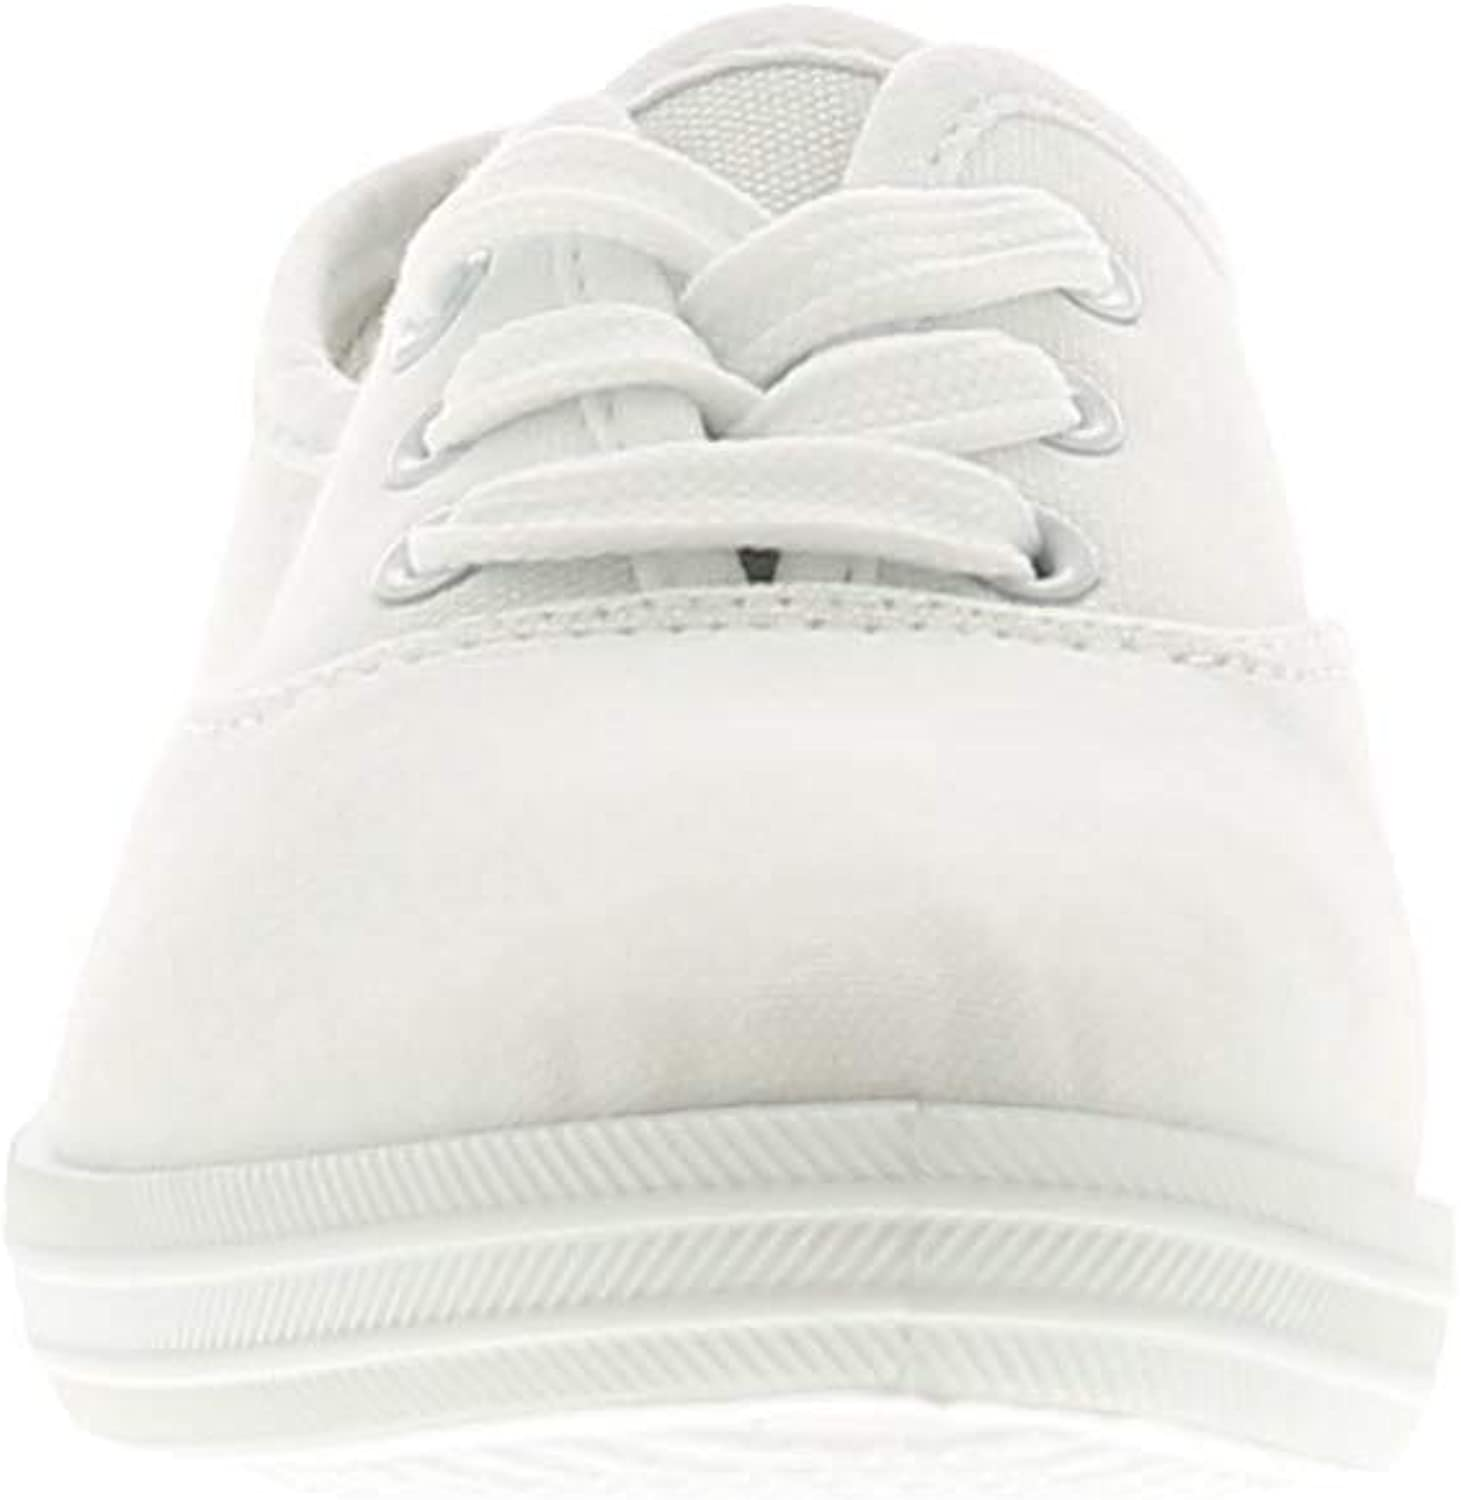 Wynsors Lace Up Girls Kids Canvas Shoes Pumps Trainers White UK Size